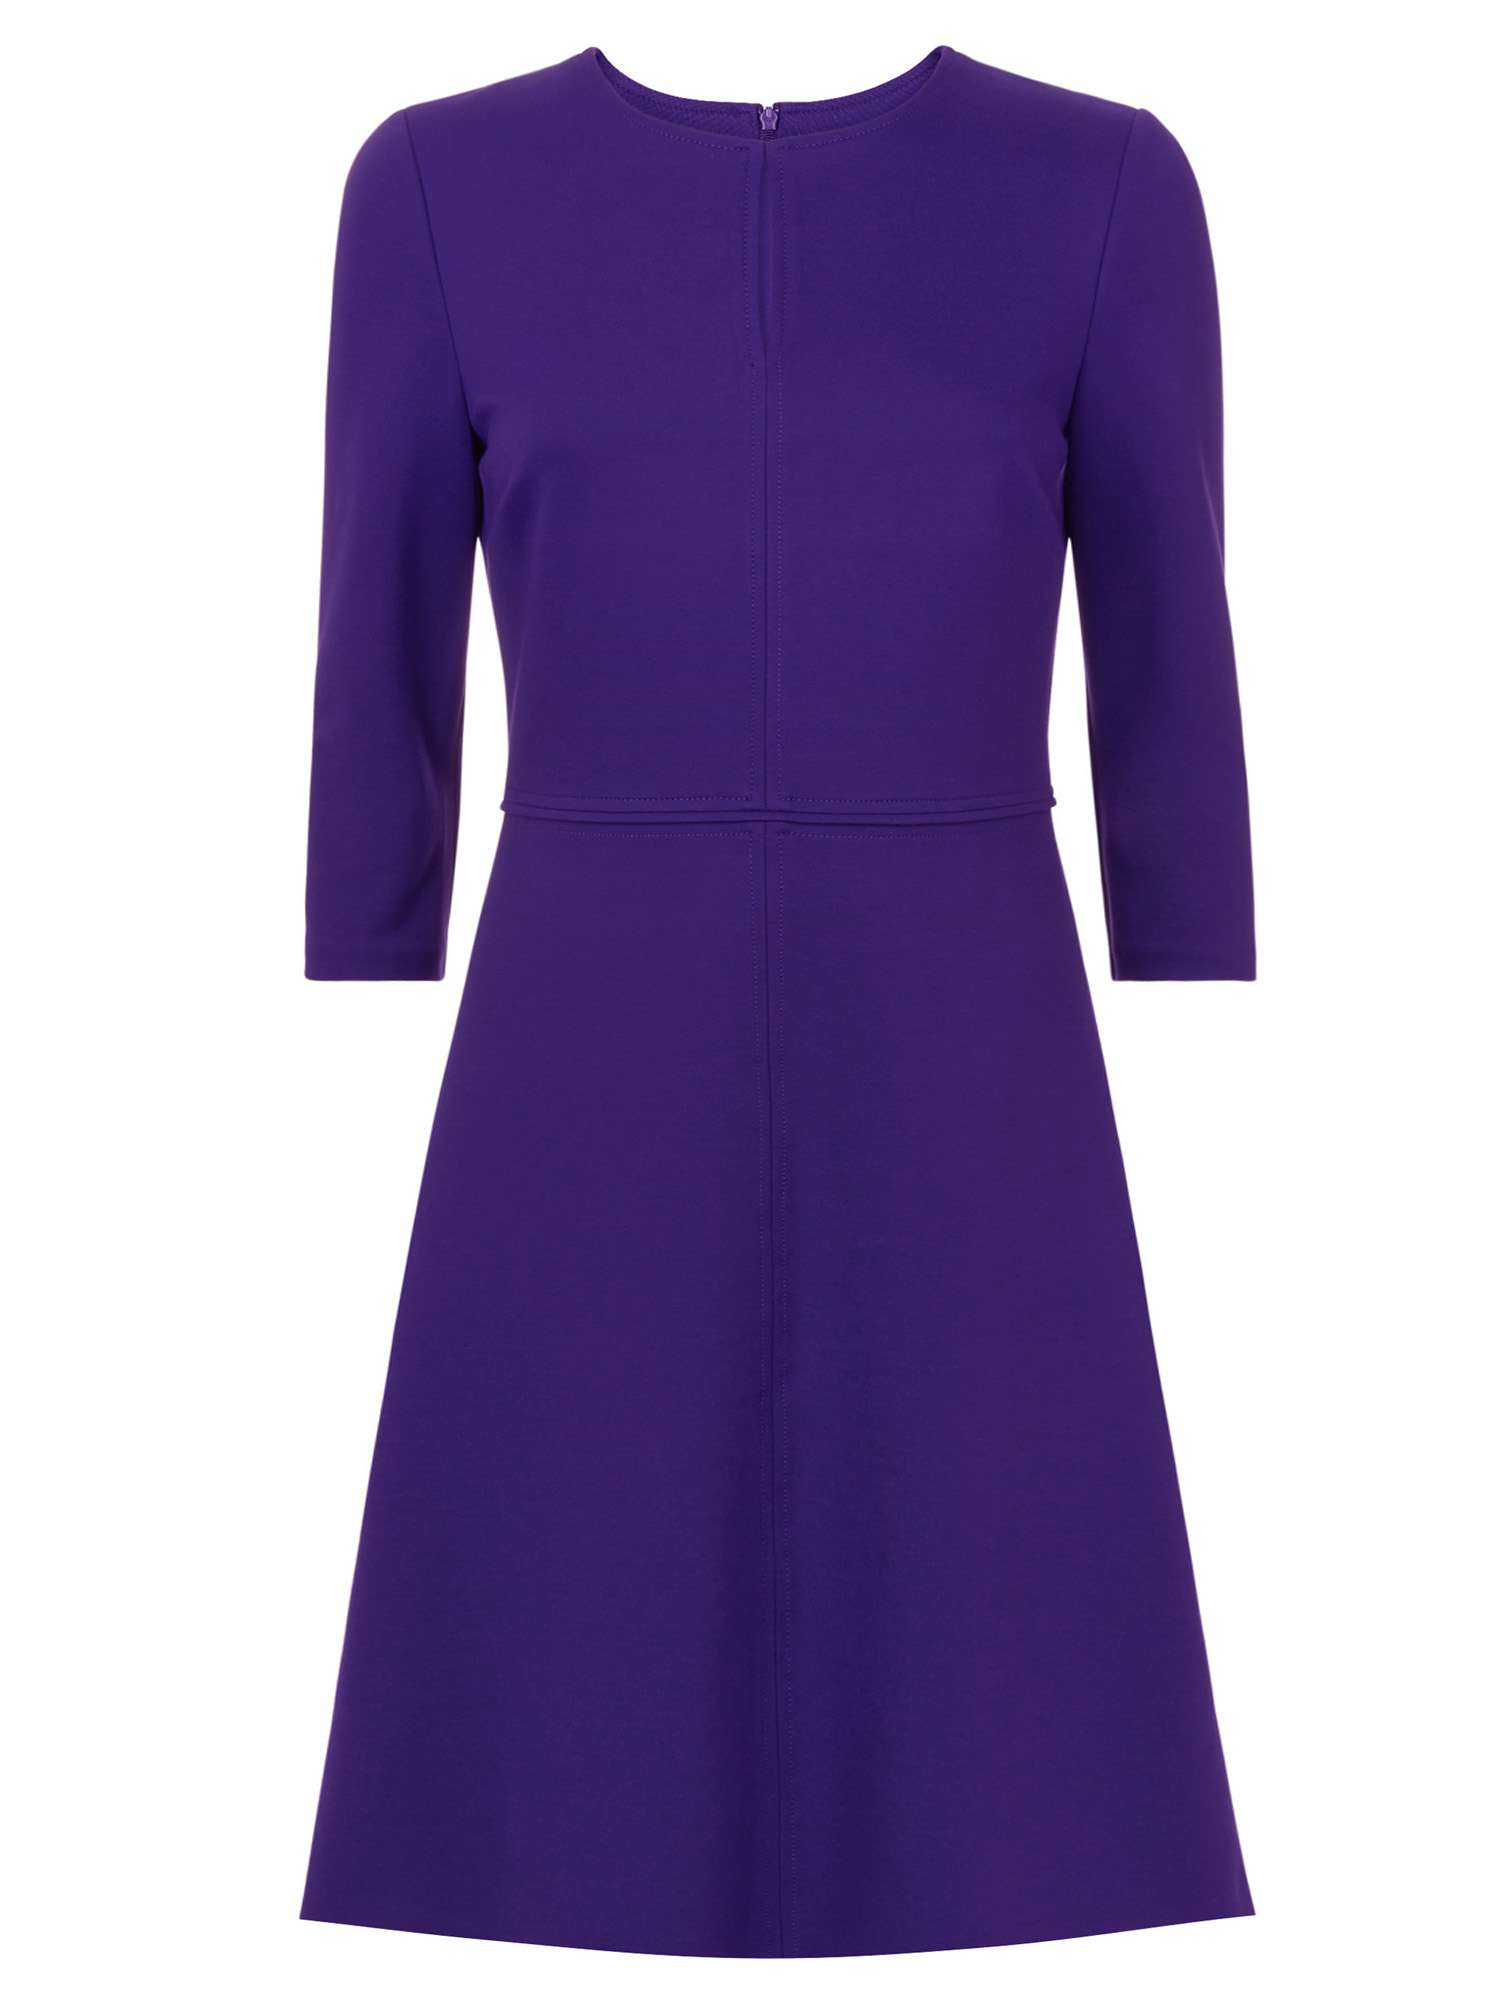 Hobbs Anais Dress - House of Fraser